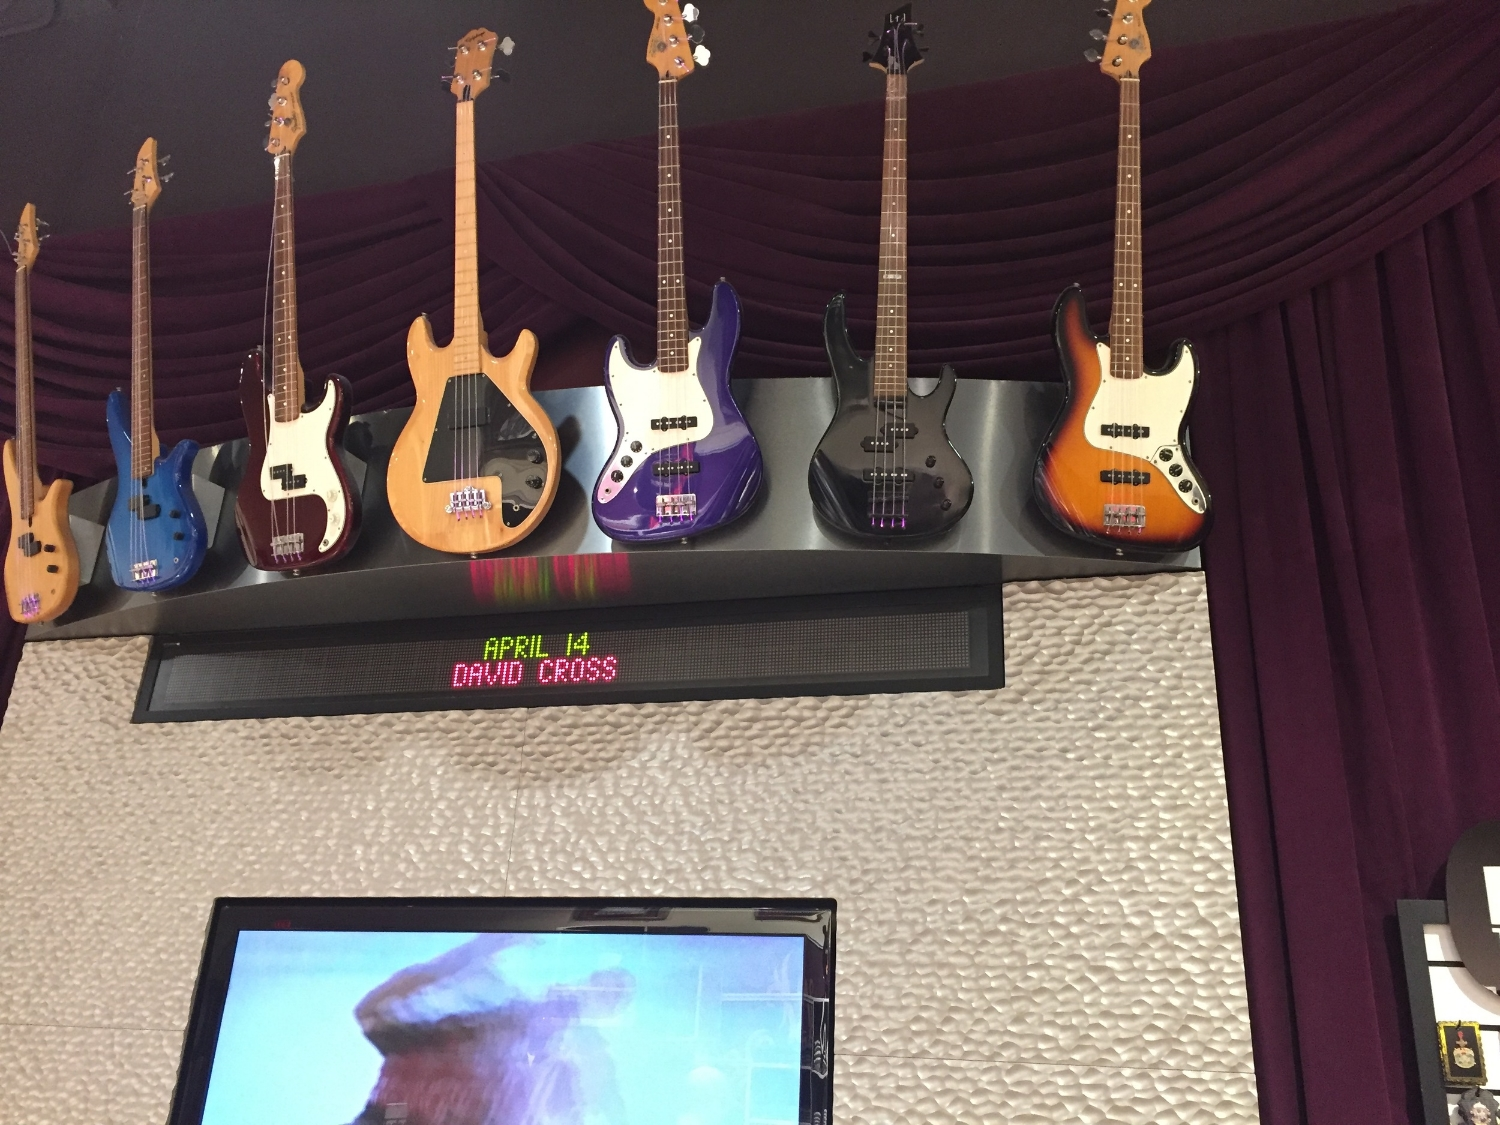 Guitars on Display at Rock Shop in Hard Rock Hotel Orlando